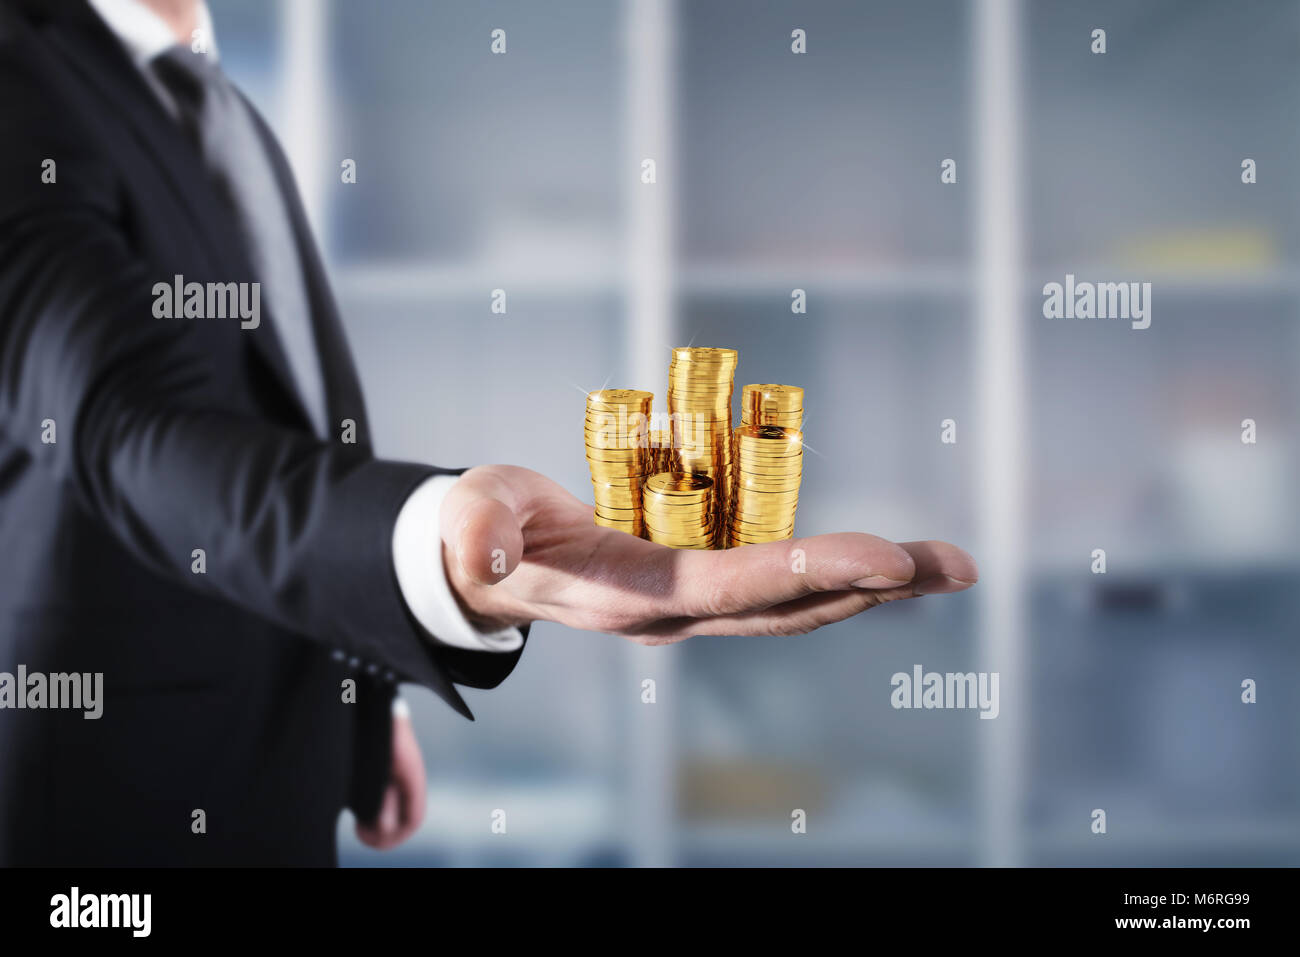 Businessman hold piles of money. Concept of success and company growth - Stock Image